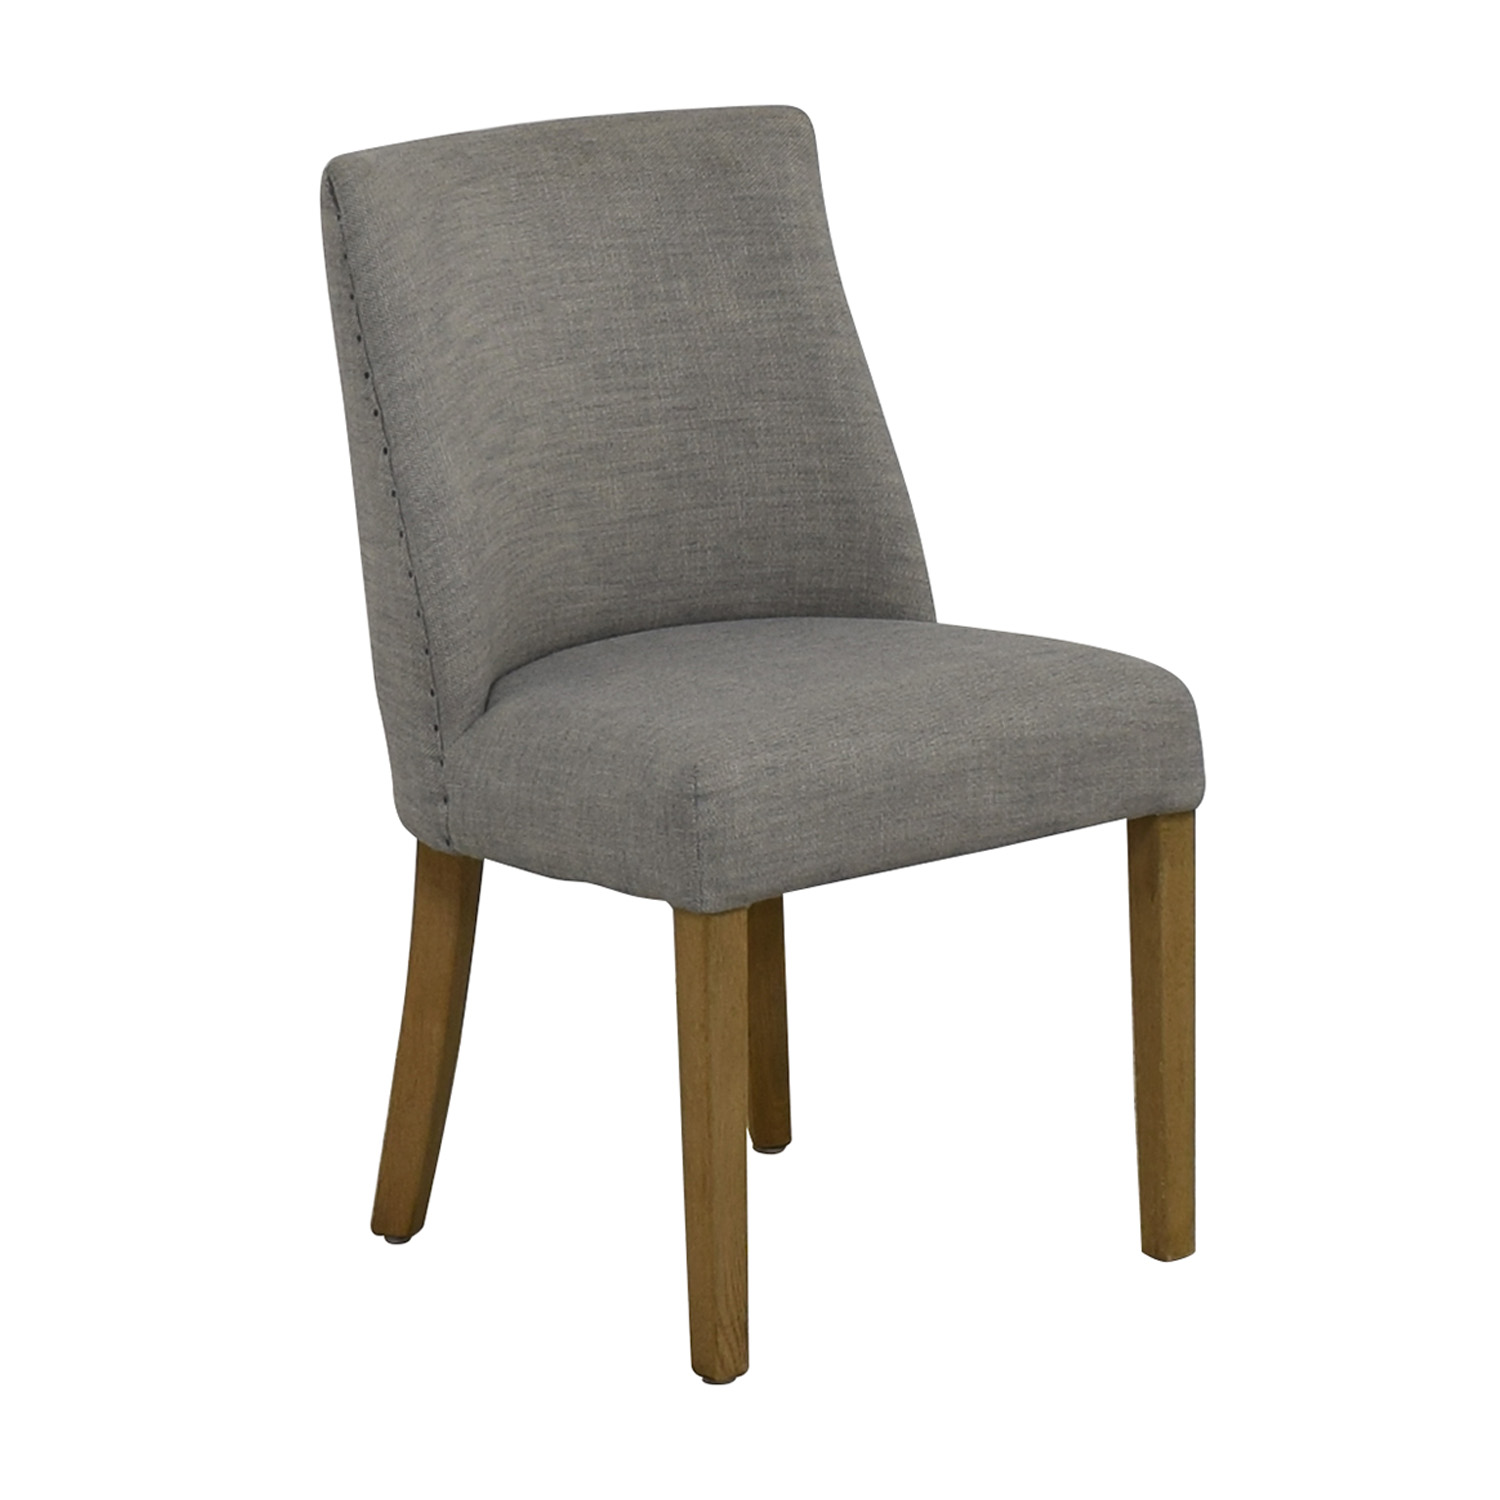 Restoration Hardware 1940S French Barrelback Fabric Side Chair / Chairs